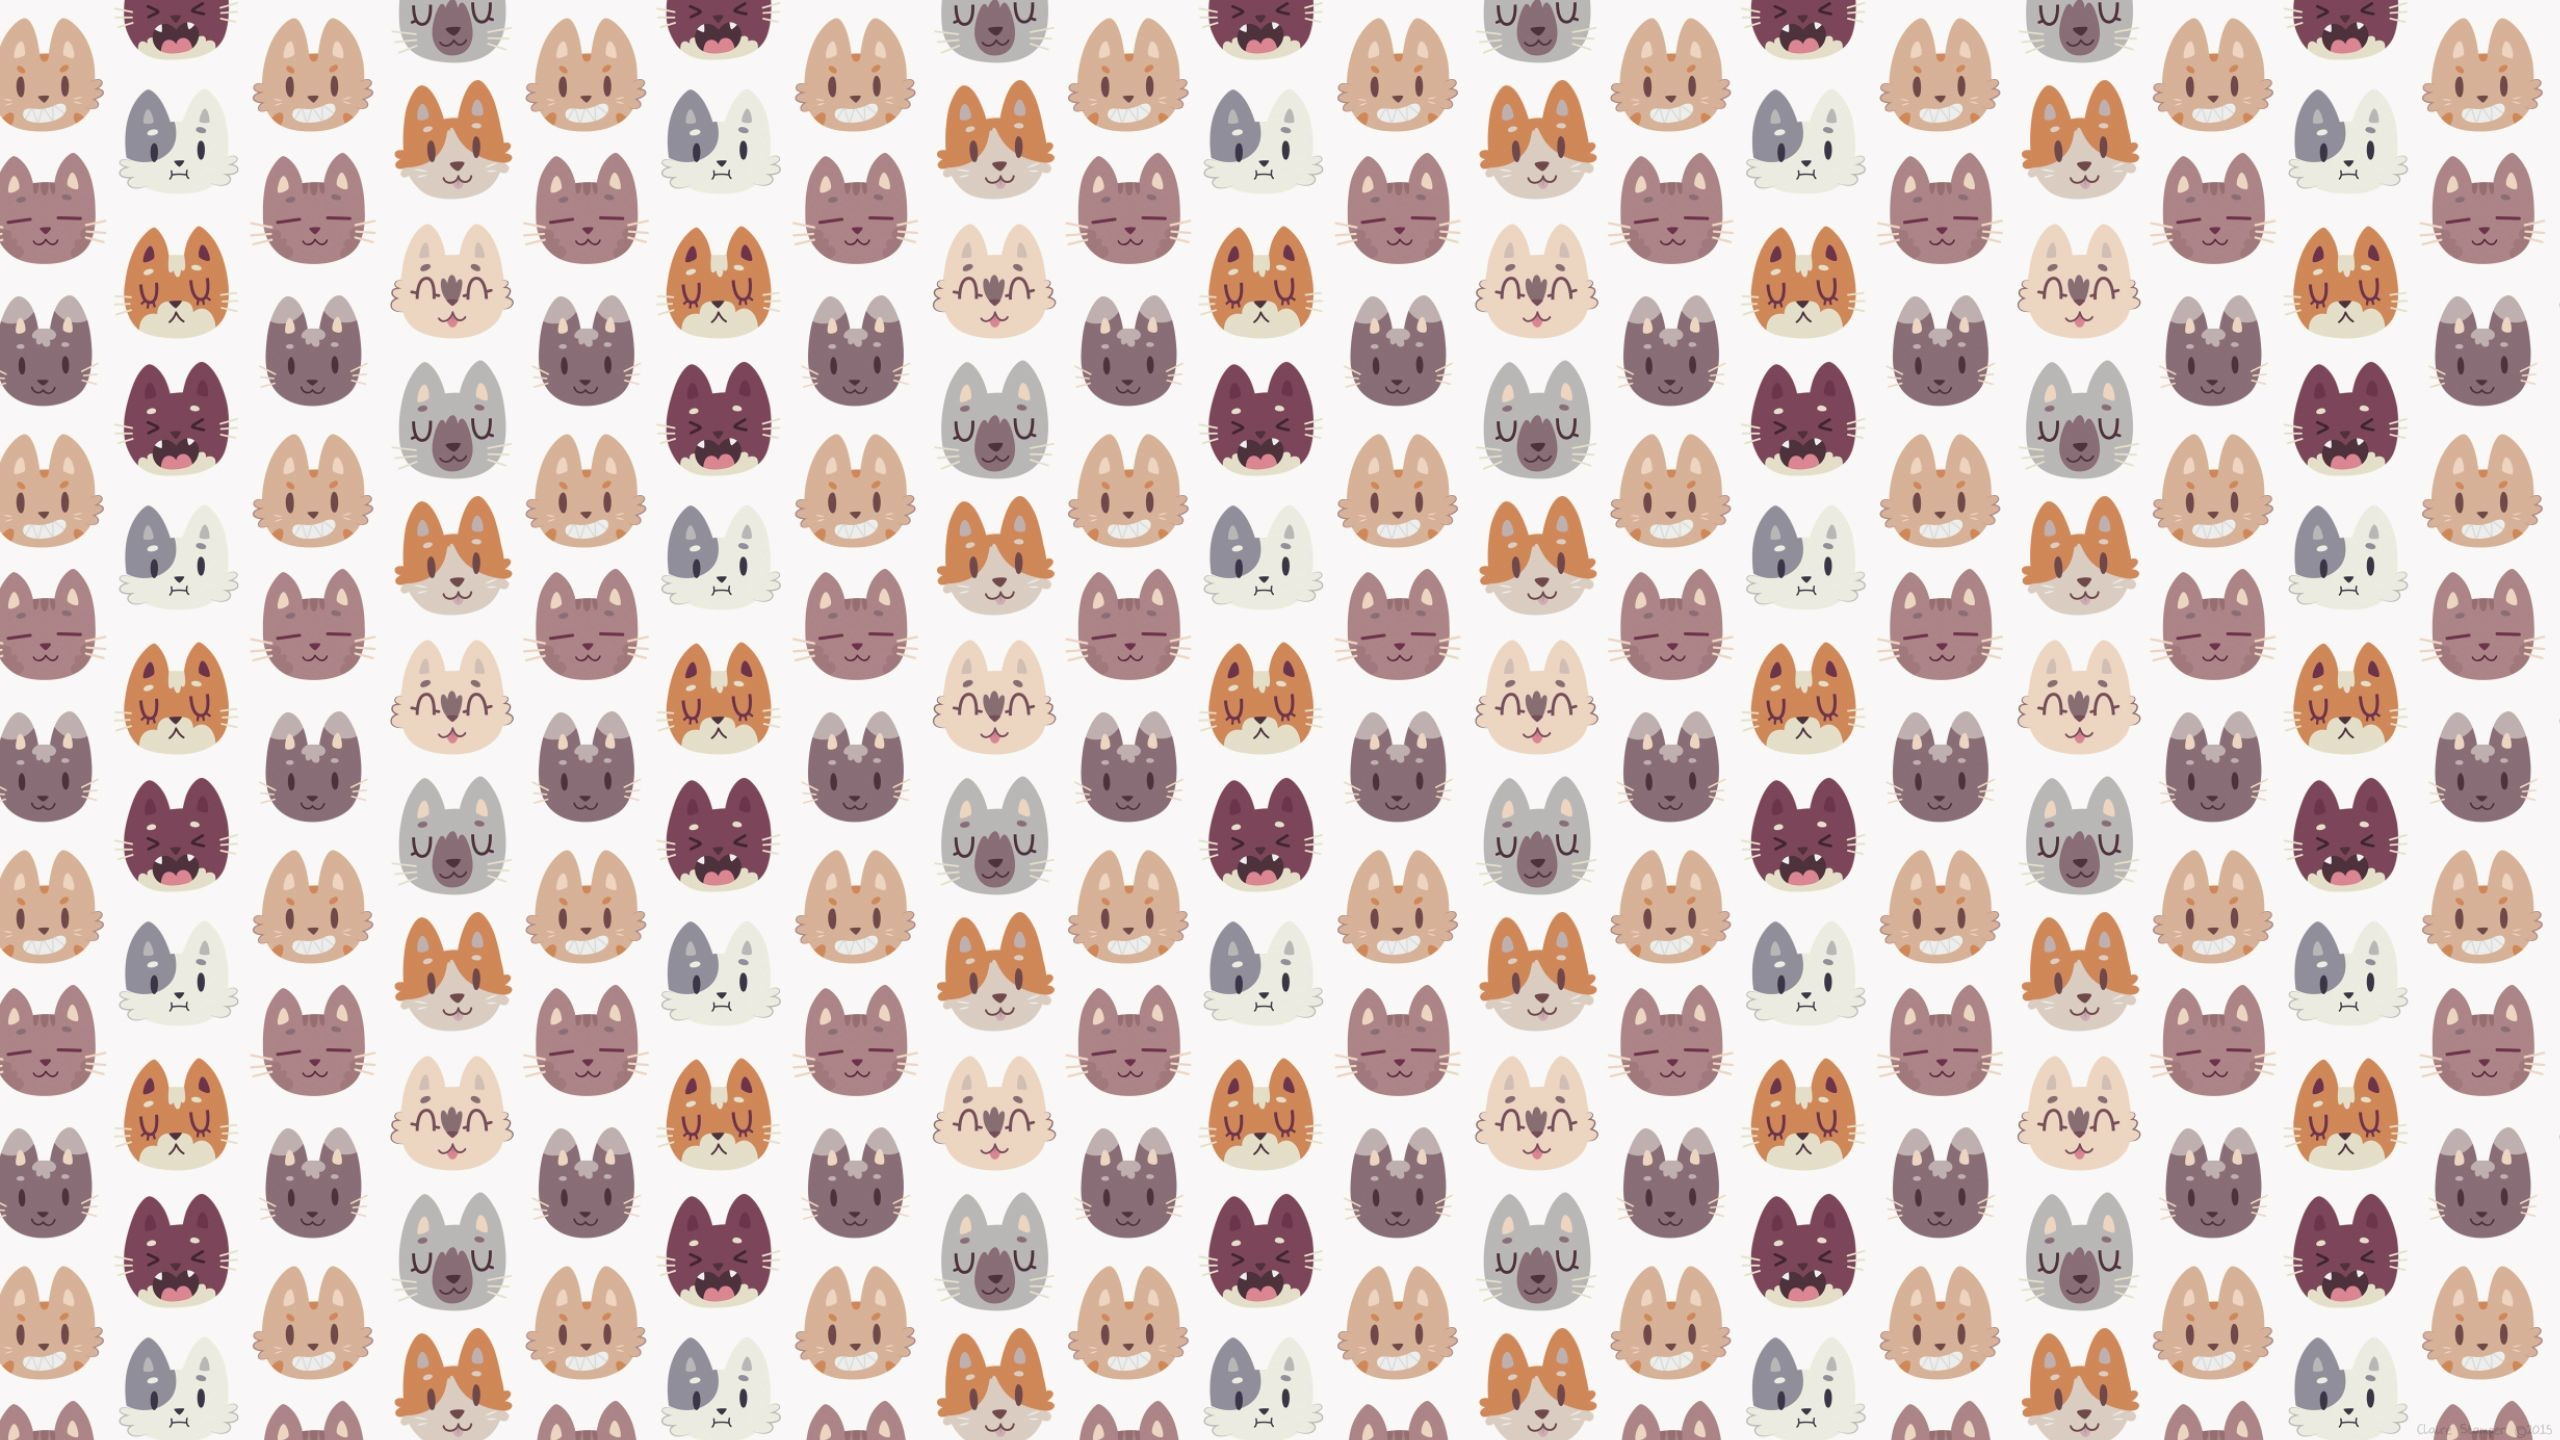 2560x1440 Kitty Cat Faces Pattern [] ...